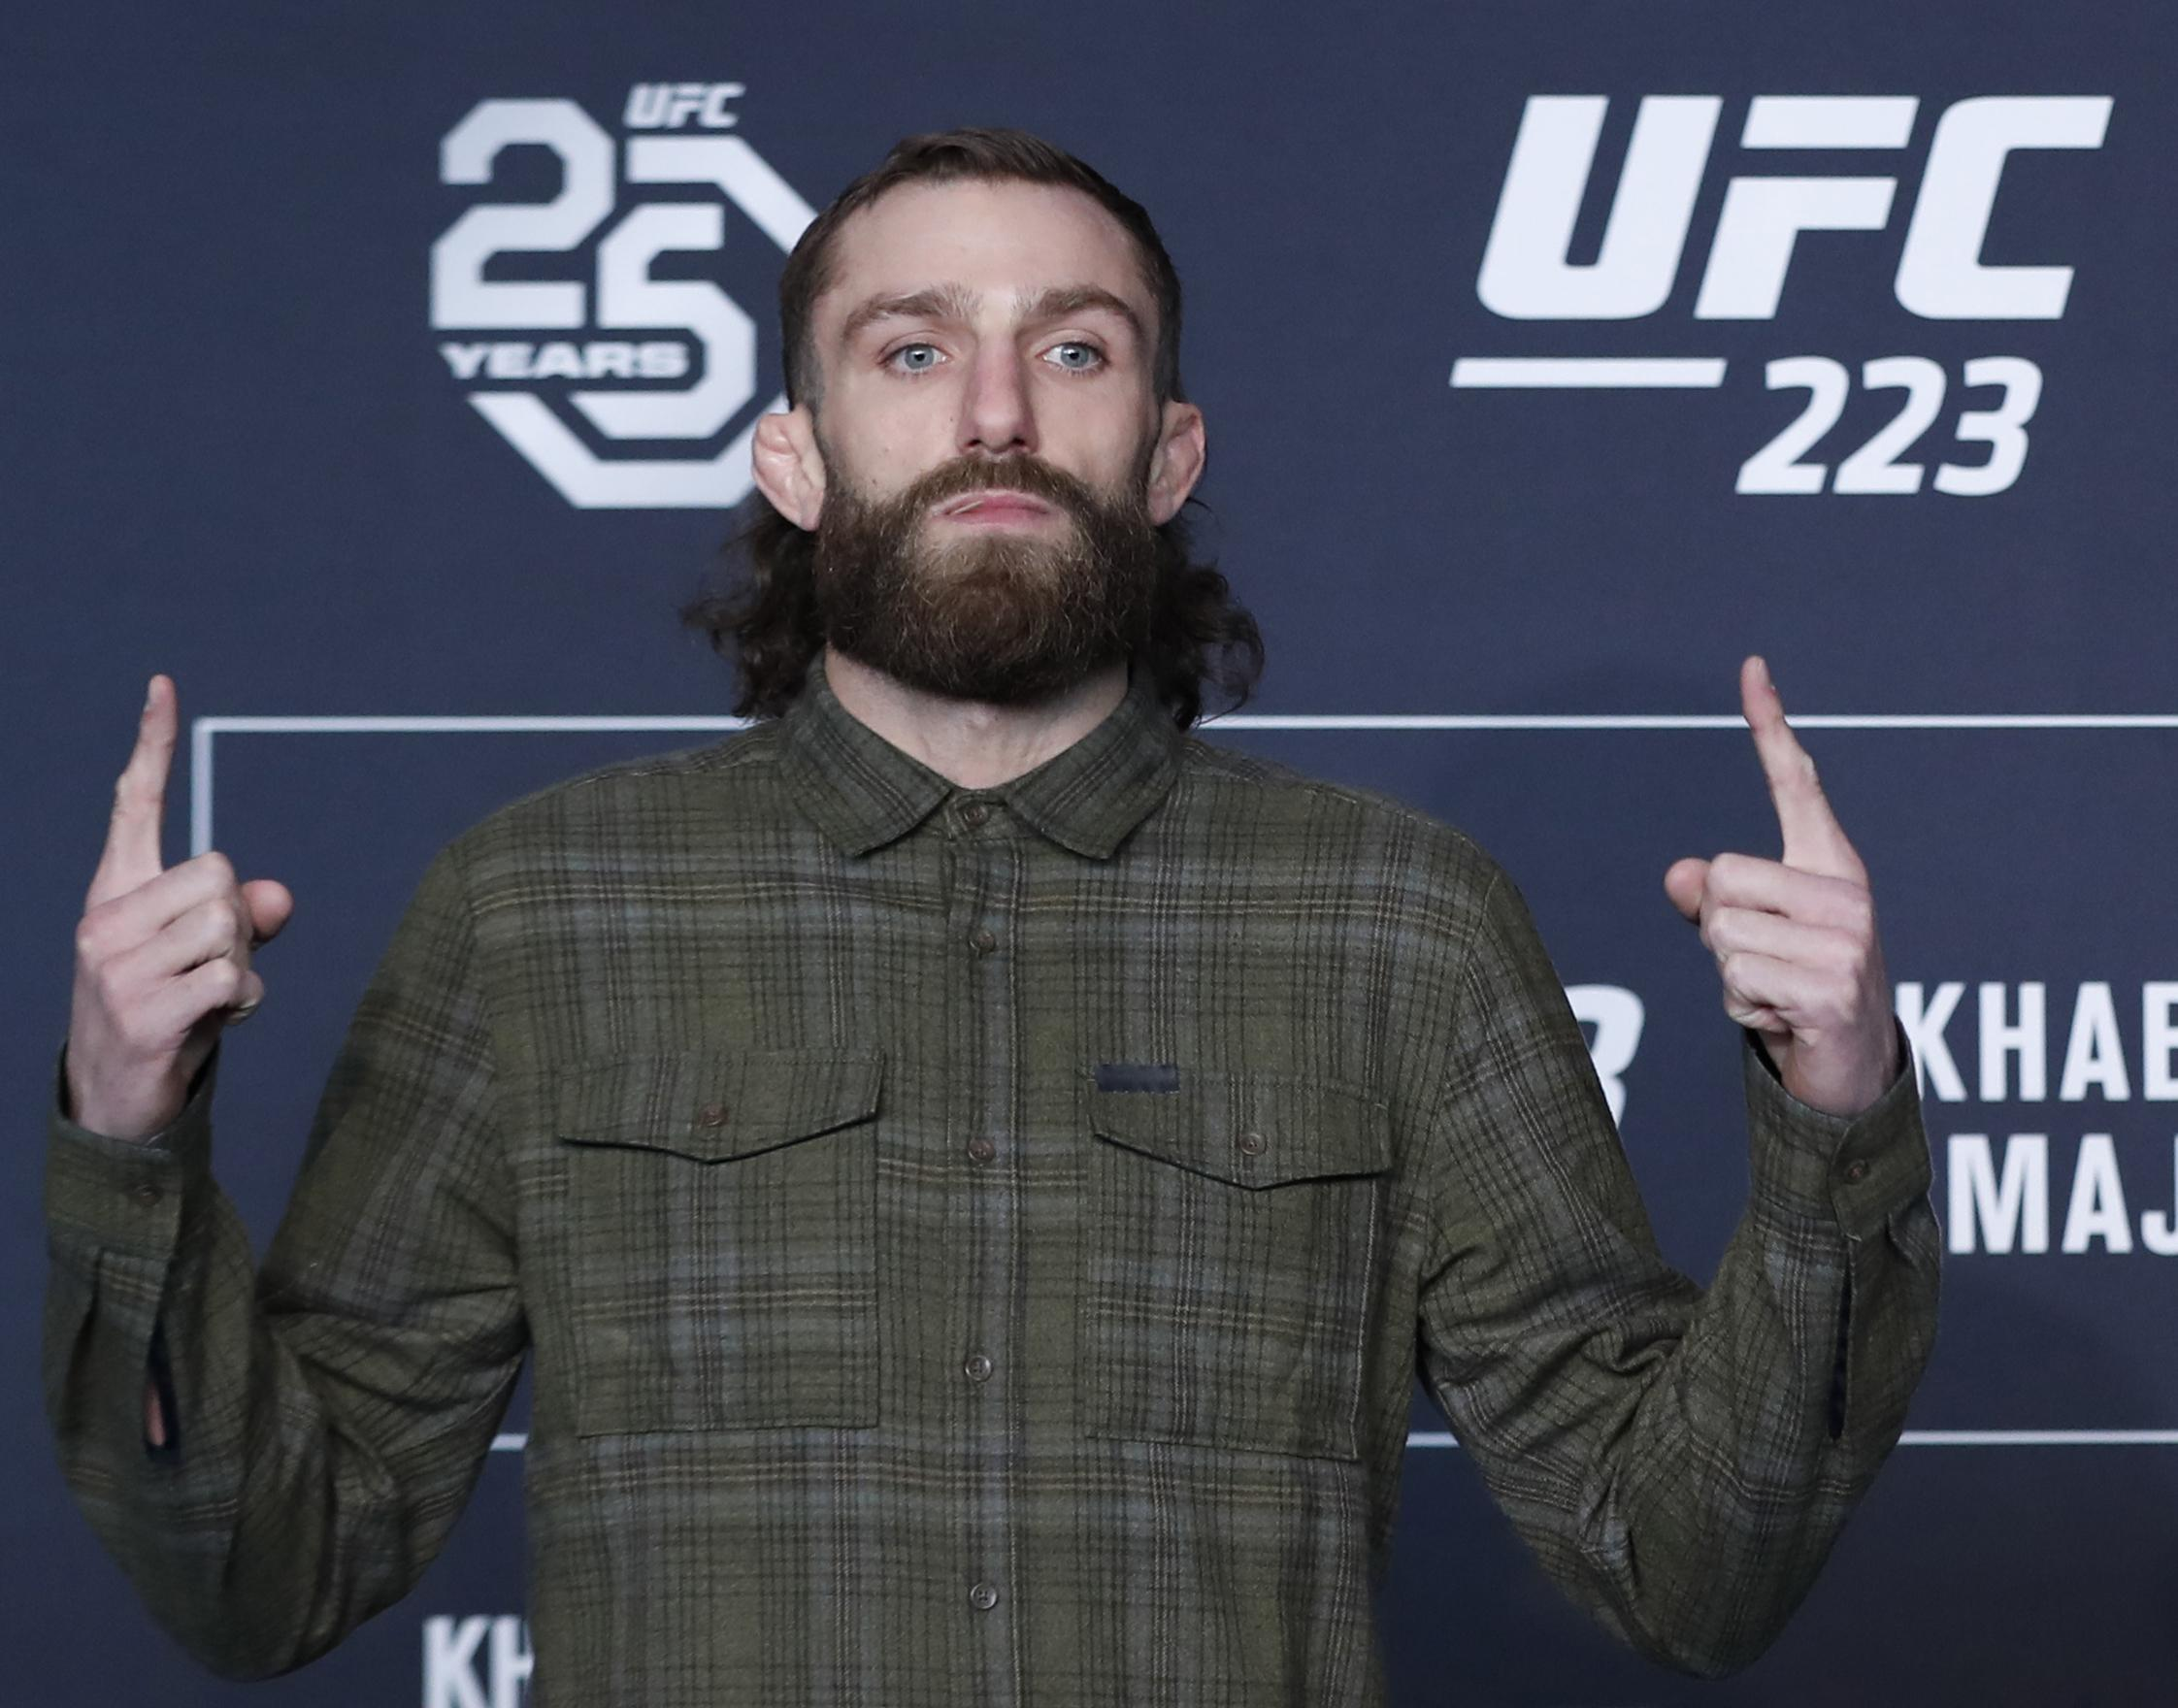 Michael Chiesa has seen his fight scrapped after suffering multiple cuts